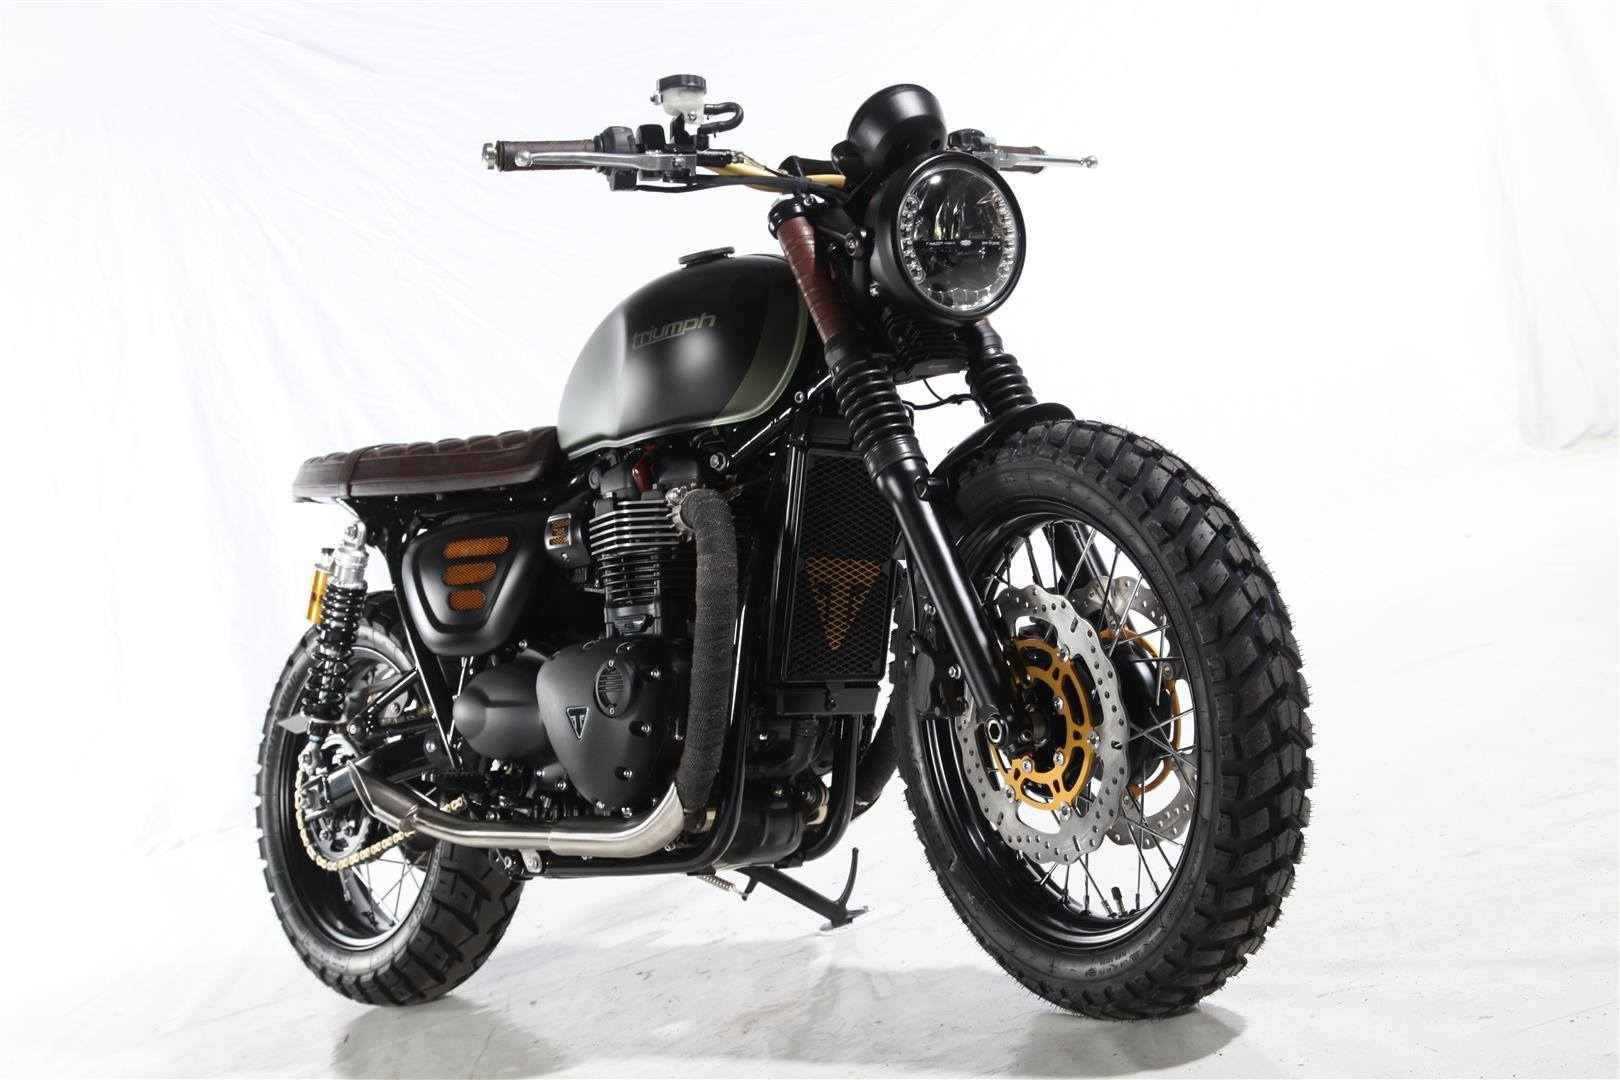 Street twin Scrambler look by Roke